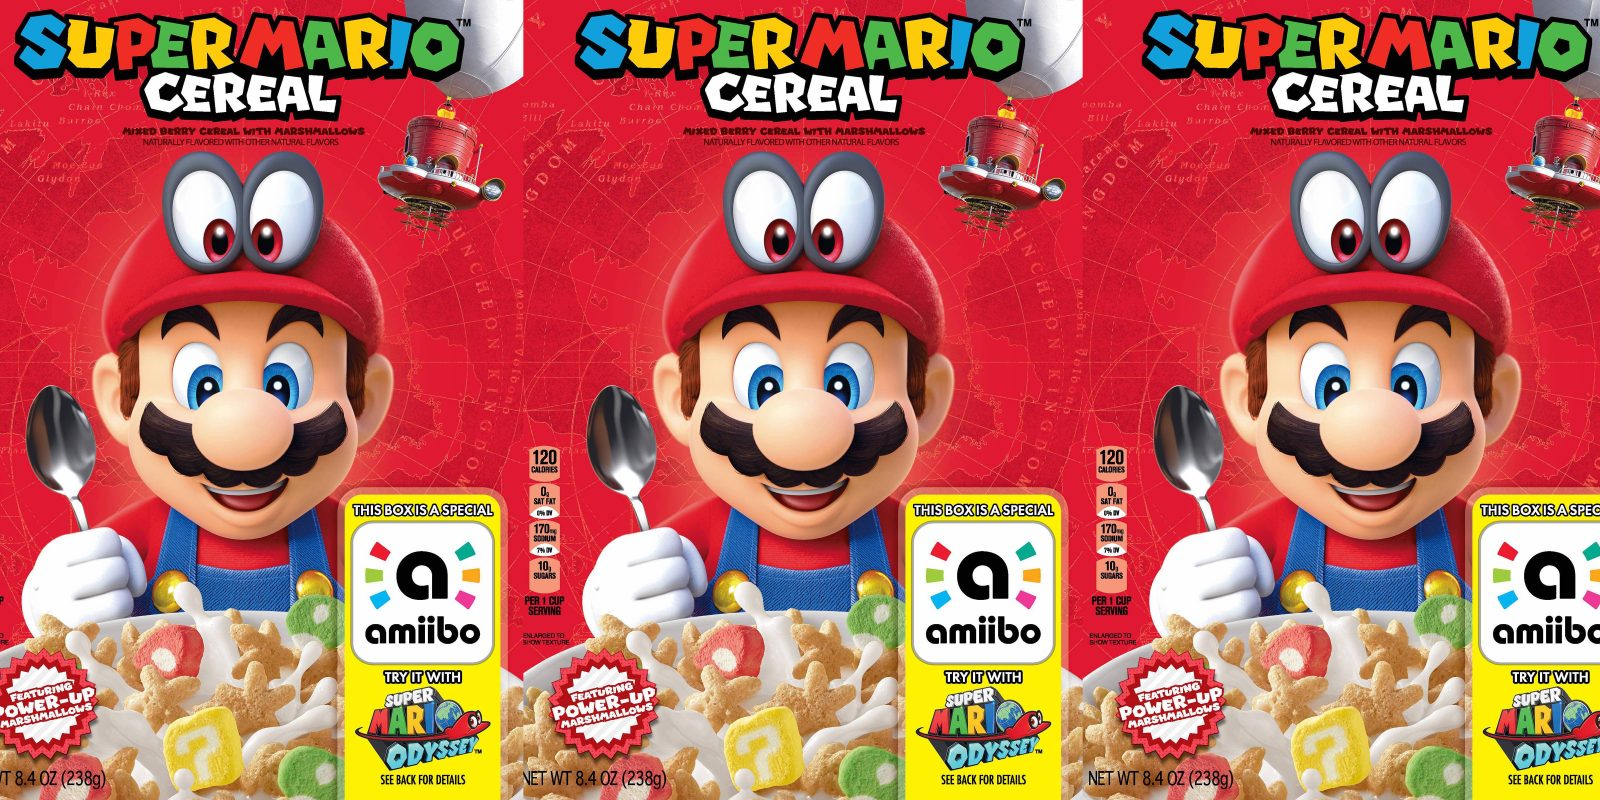 df4a00c237 Kellogg's Super Mario Cereal + amiibo now available for $2.50 or less at  Target